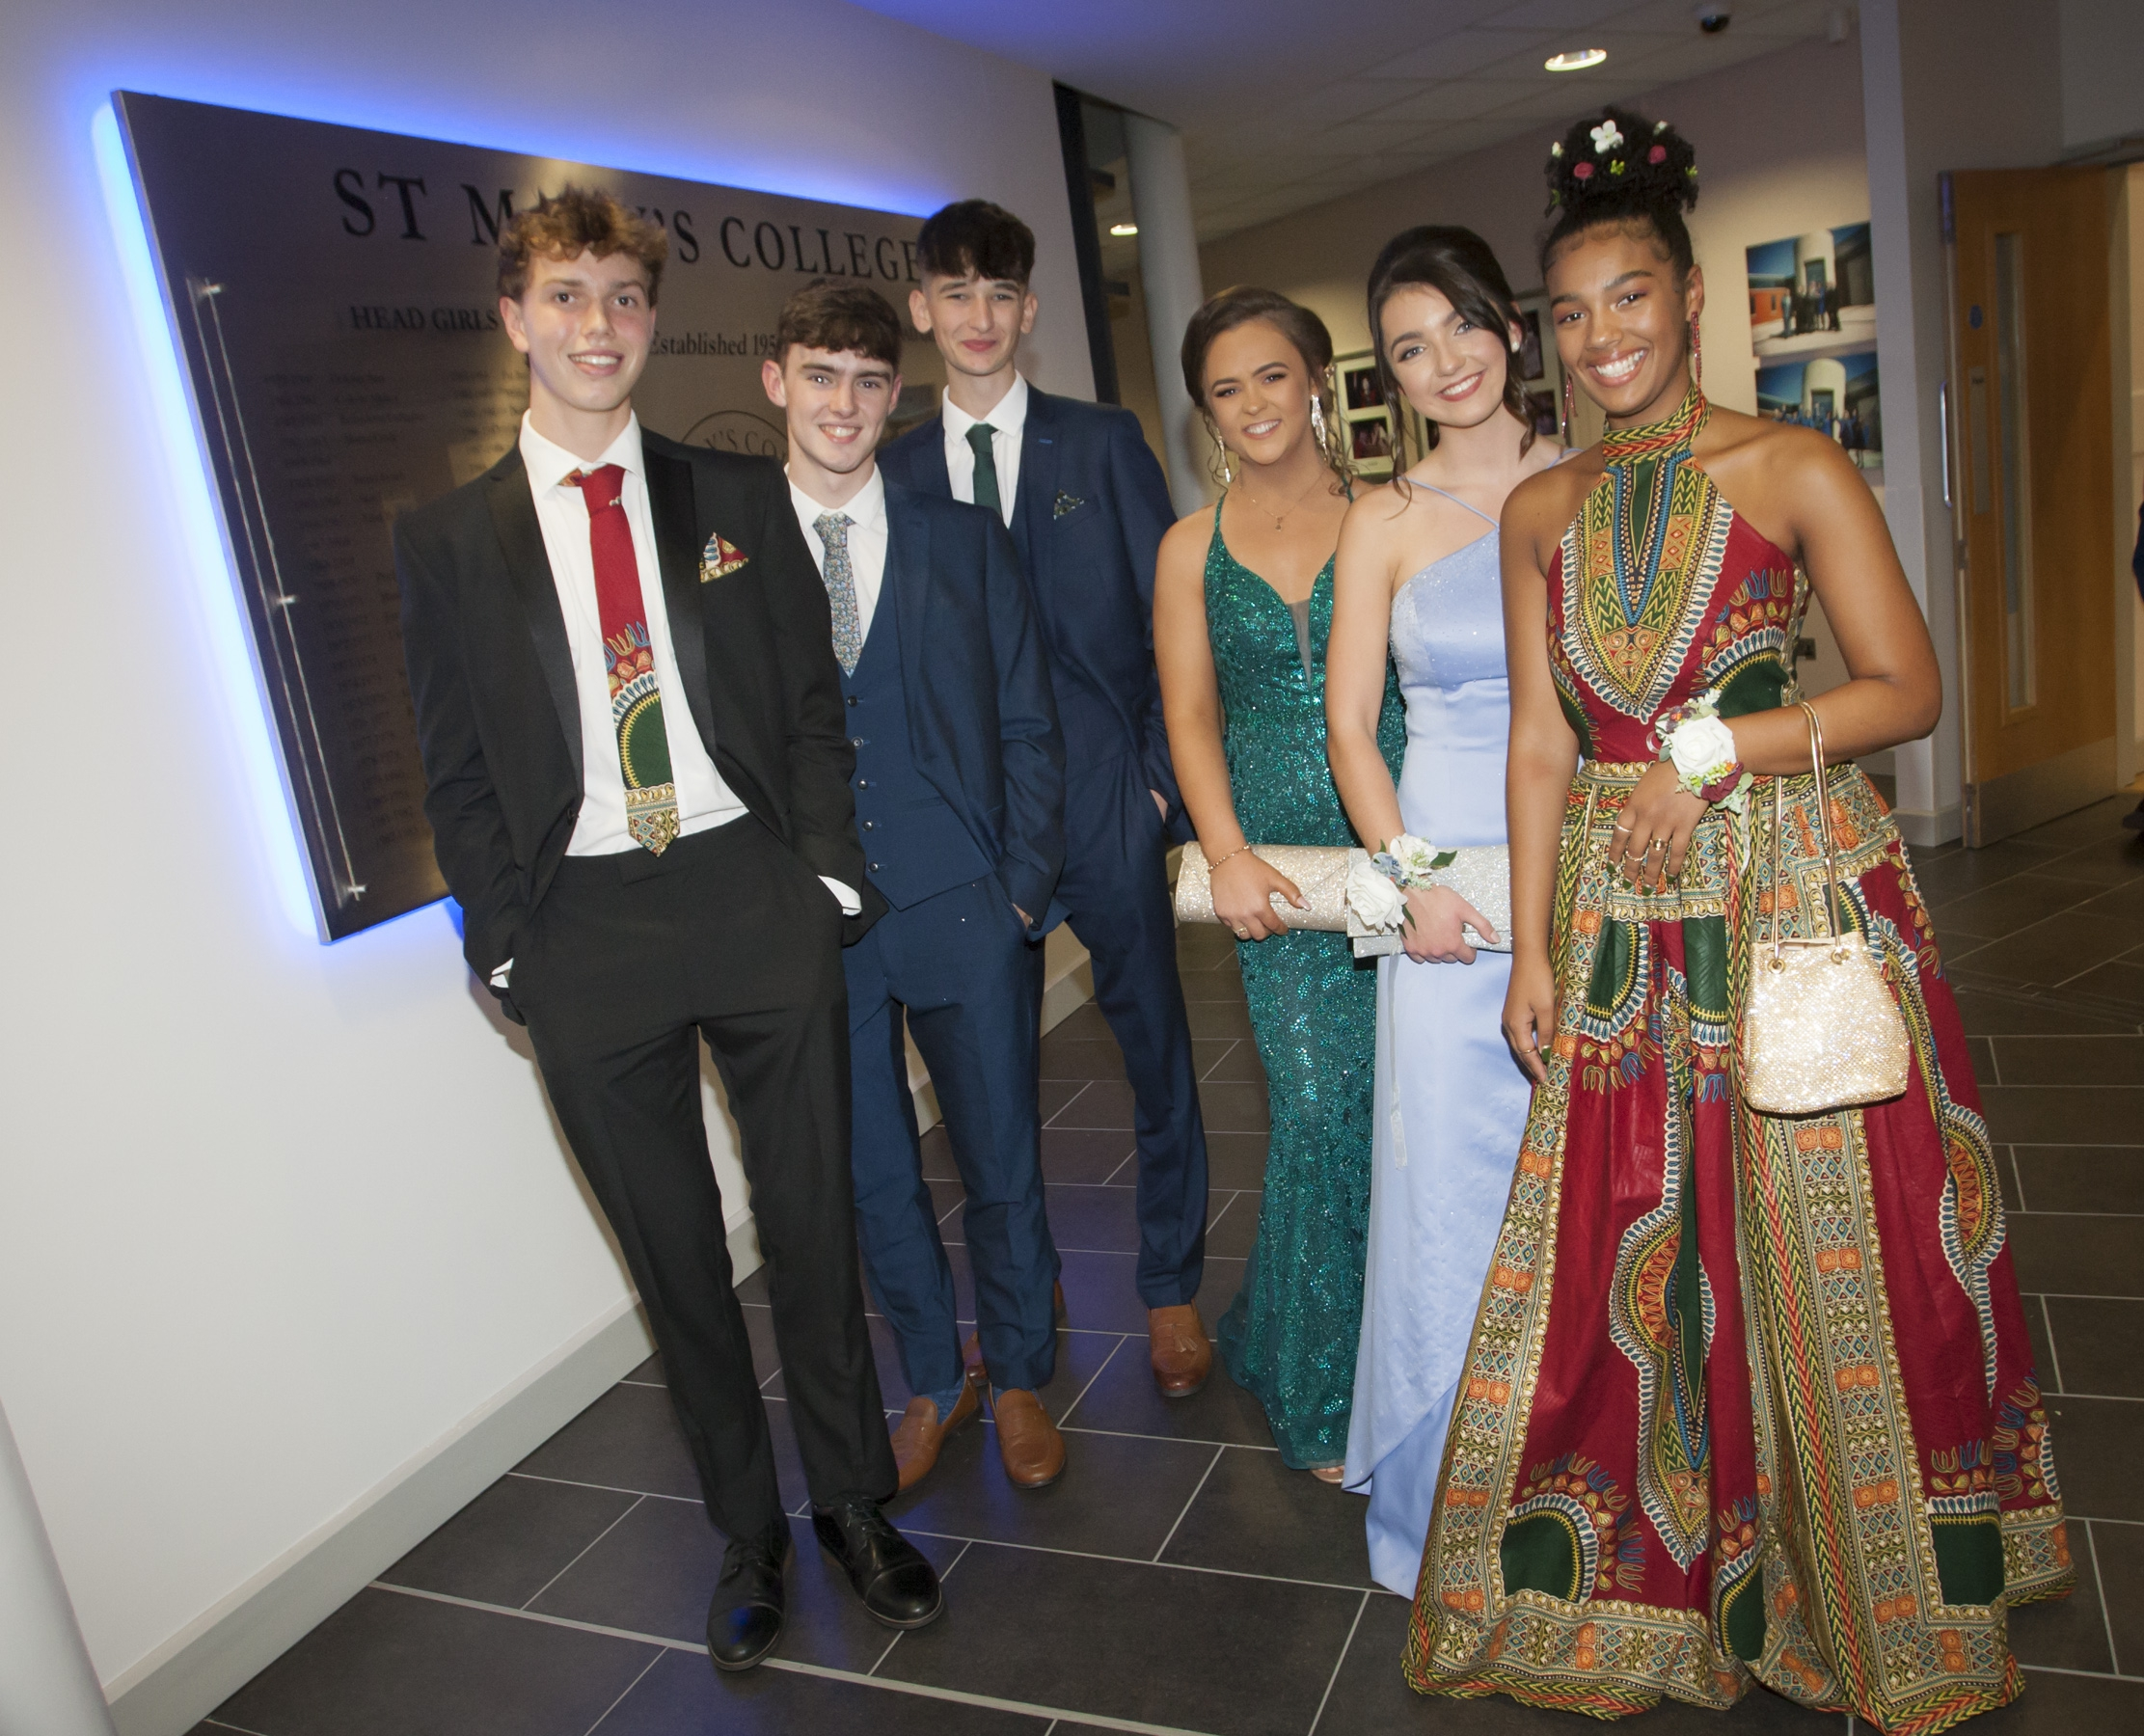 Pictured at the St. Mary's College Annual Formal on Thursday night are Donncha Gilmore, Darragh Coyle, Piaras Carsley, Eimear Cregan, Deirbhile Herron and Ellen Glackin.